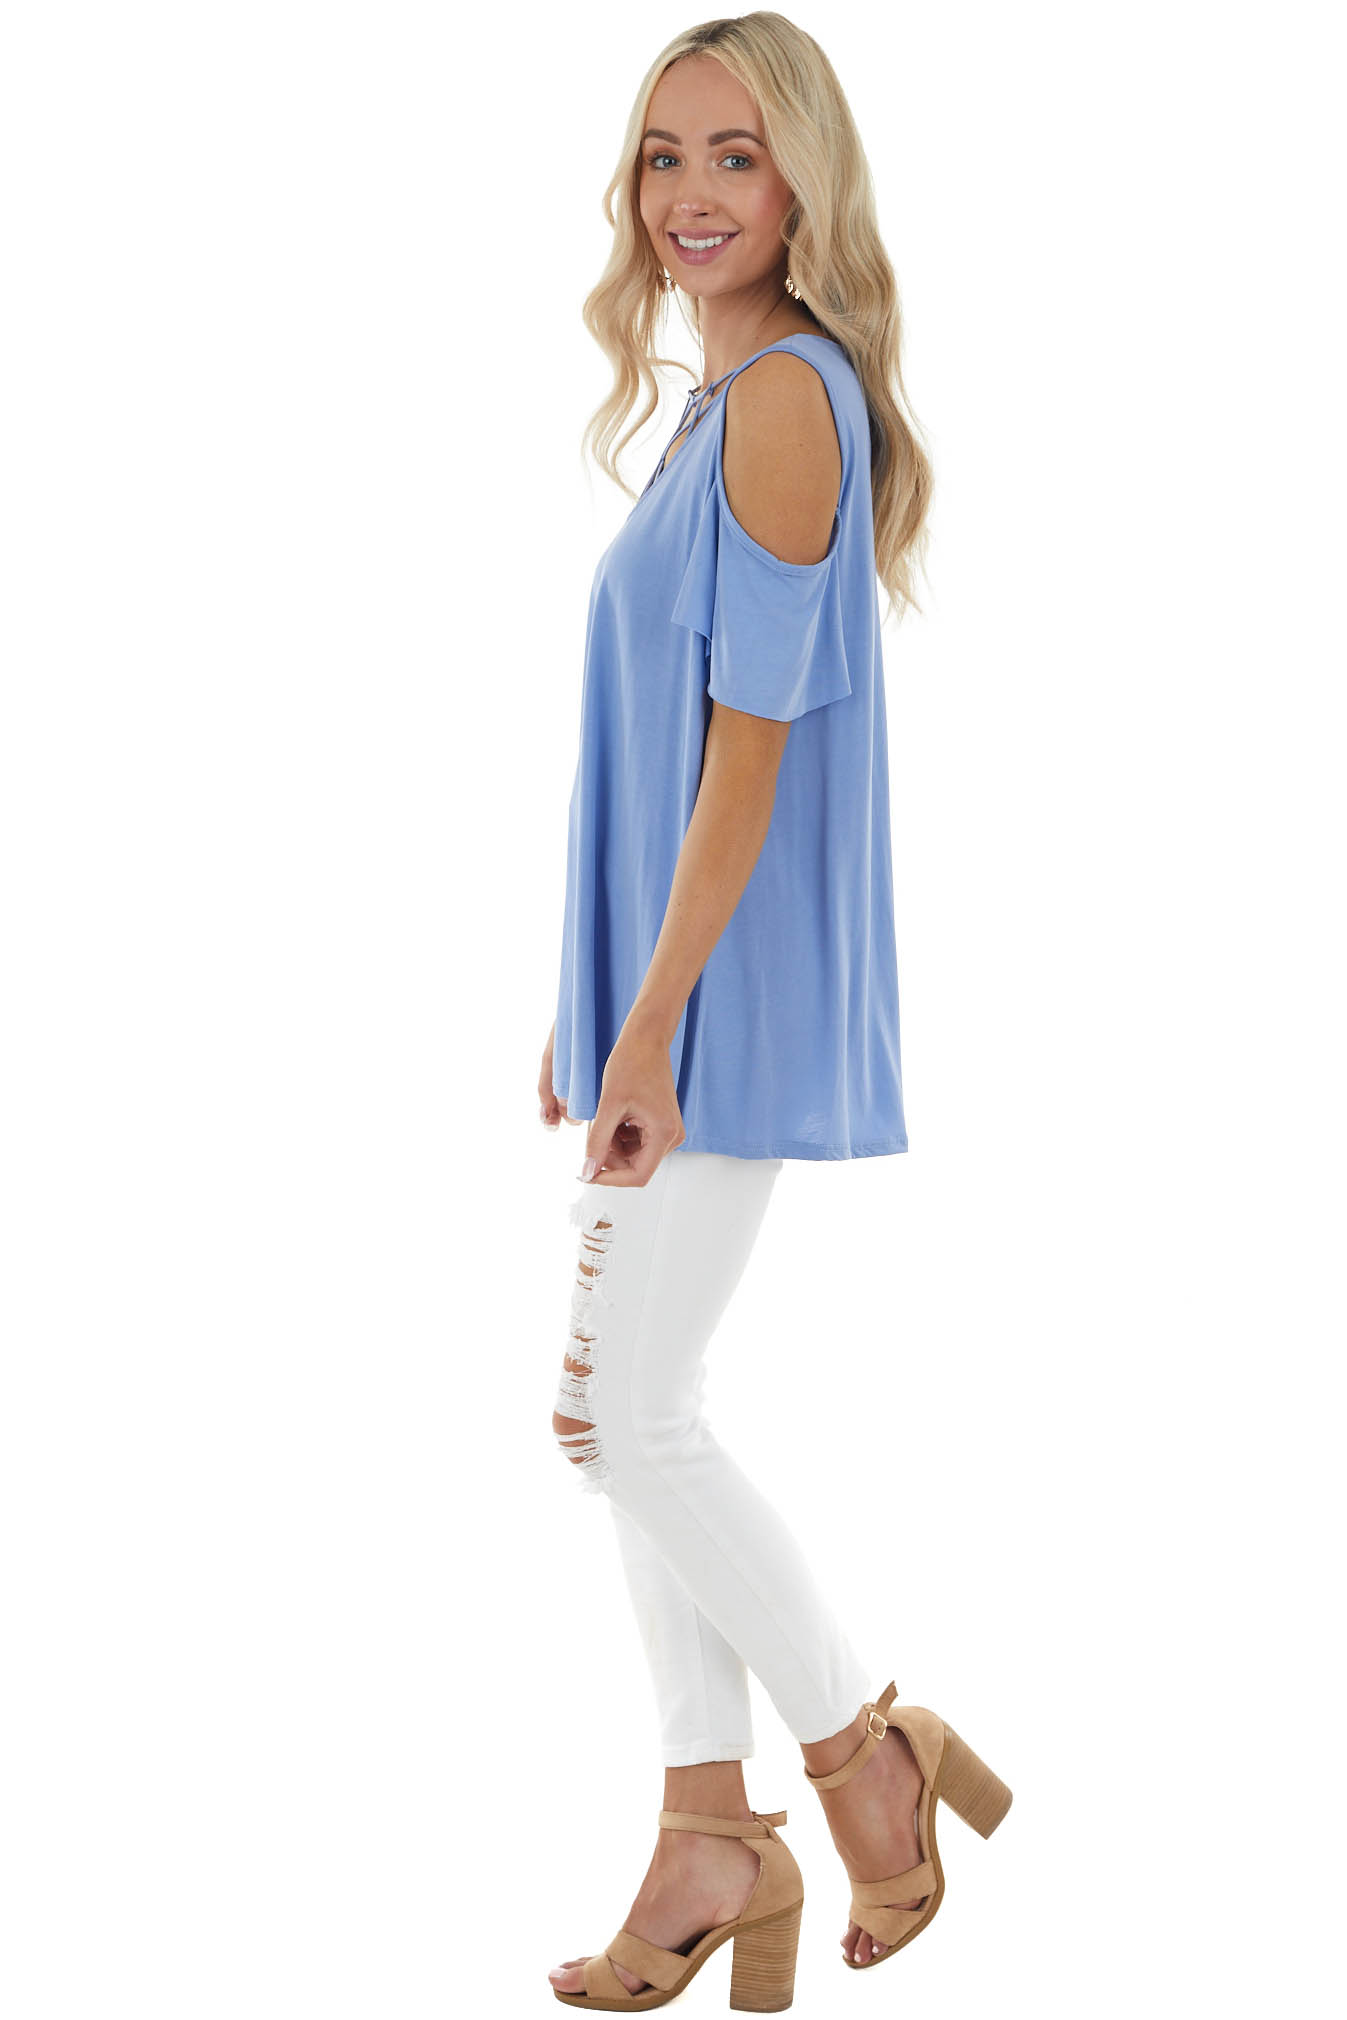 Cornflower Blue Knit Top with Cut Out Sleeves and Caged Neck